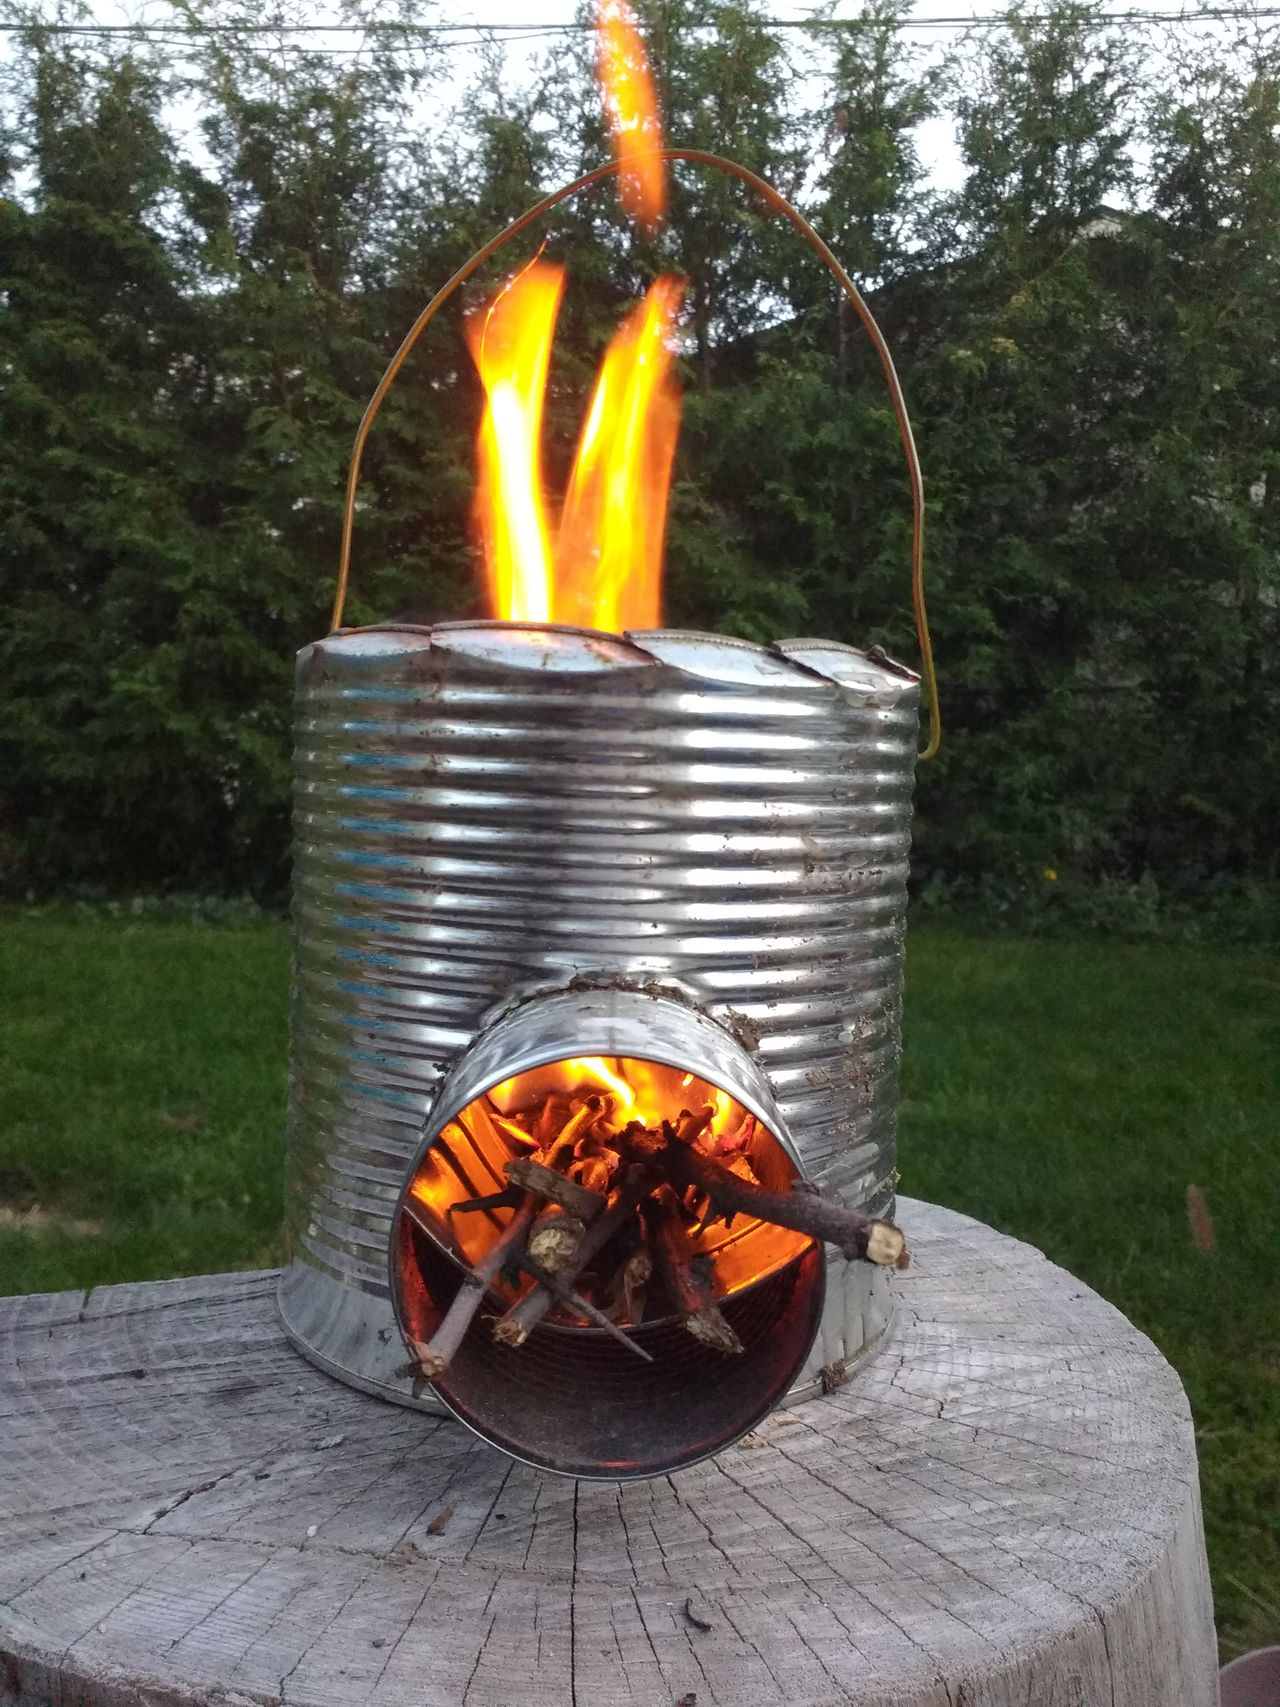 A simple Rocket Stove made from four cans, a hanger, and earth. Rocket Stove Burning Flame Lawn Fire - Natural Phenomenon Firewood No People Glowing Orange Color Canada Coast To Coast Eyeem Collection EyeEm Best Shots Popular Campfire Firepit Eye4photography  EyeEm Gallery Fire Simplicity Cooking Fire Pit Aluminum Can Survival Branches Always Be Cozy